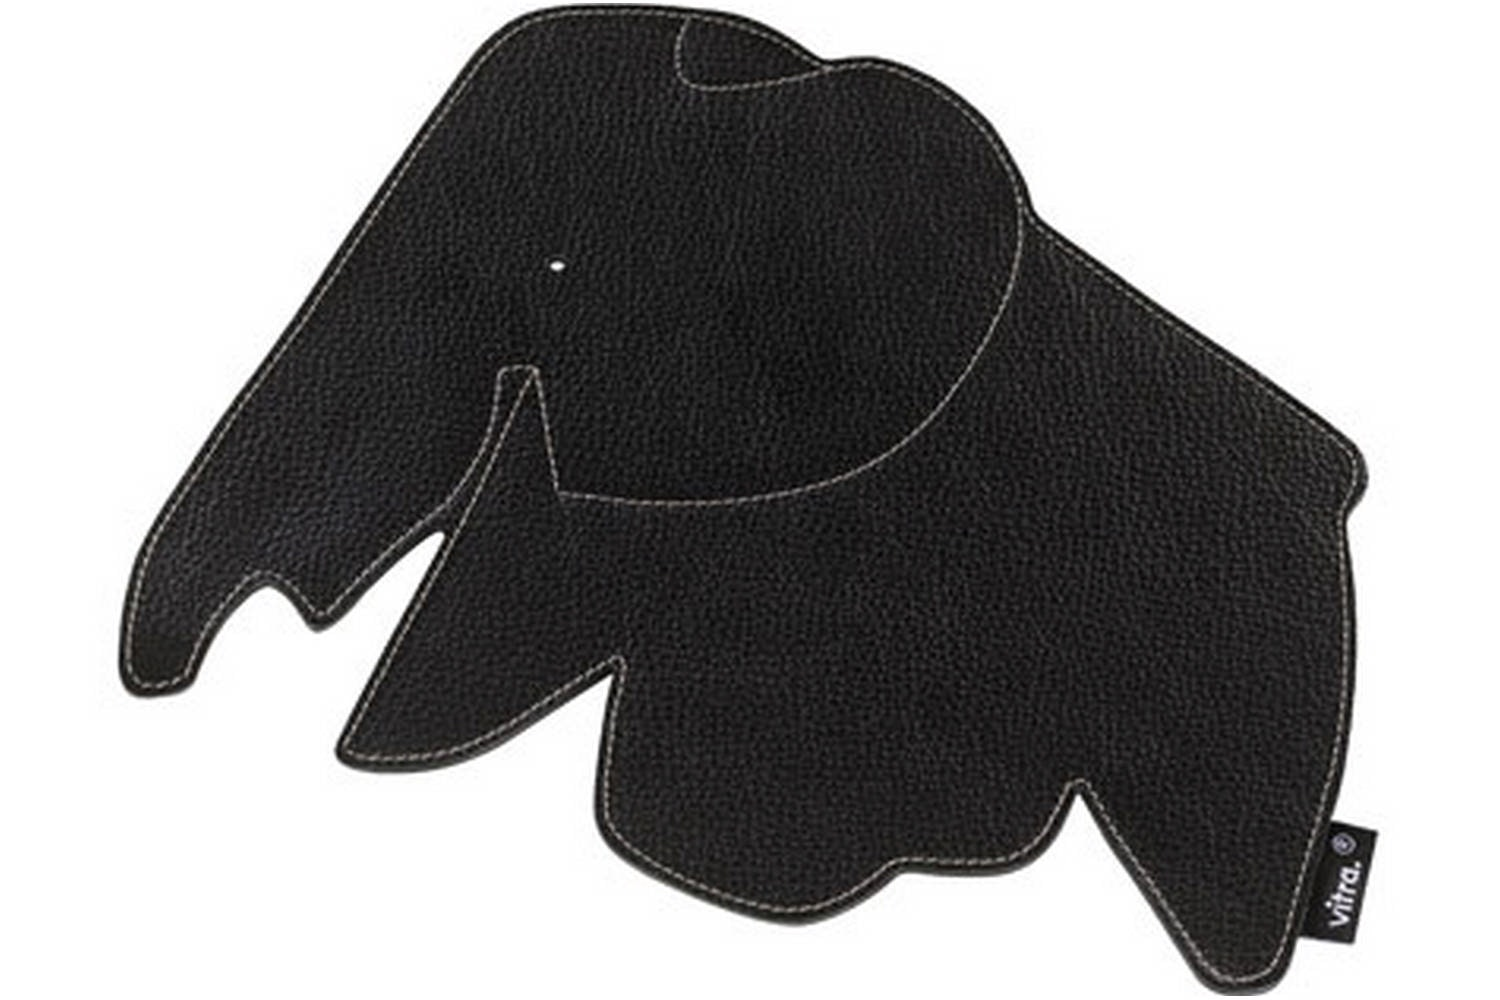 Elephant Pad by Hella Jongerius for Vitra